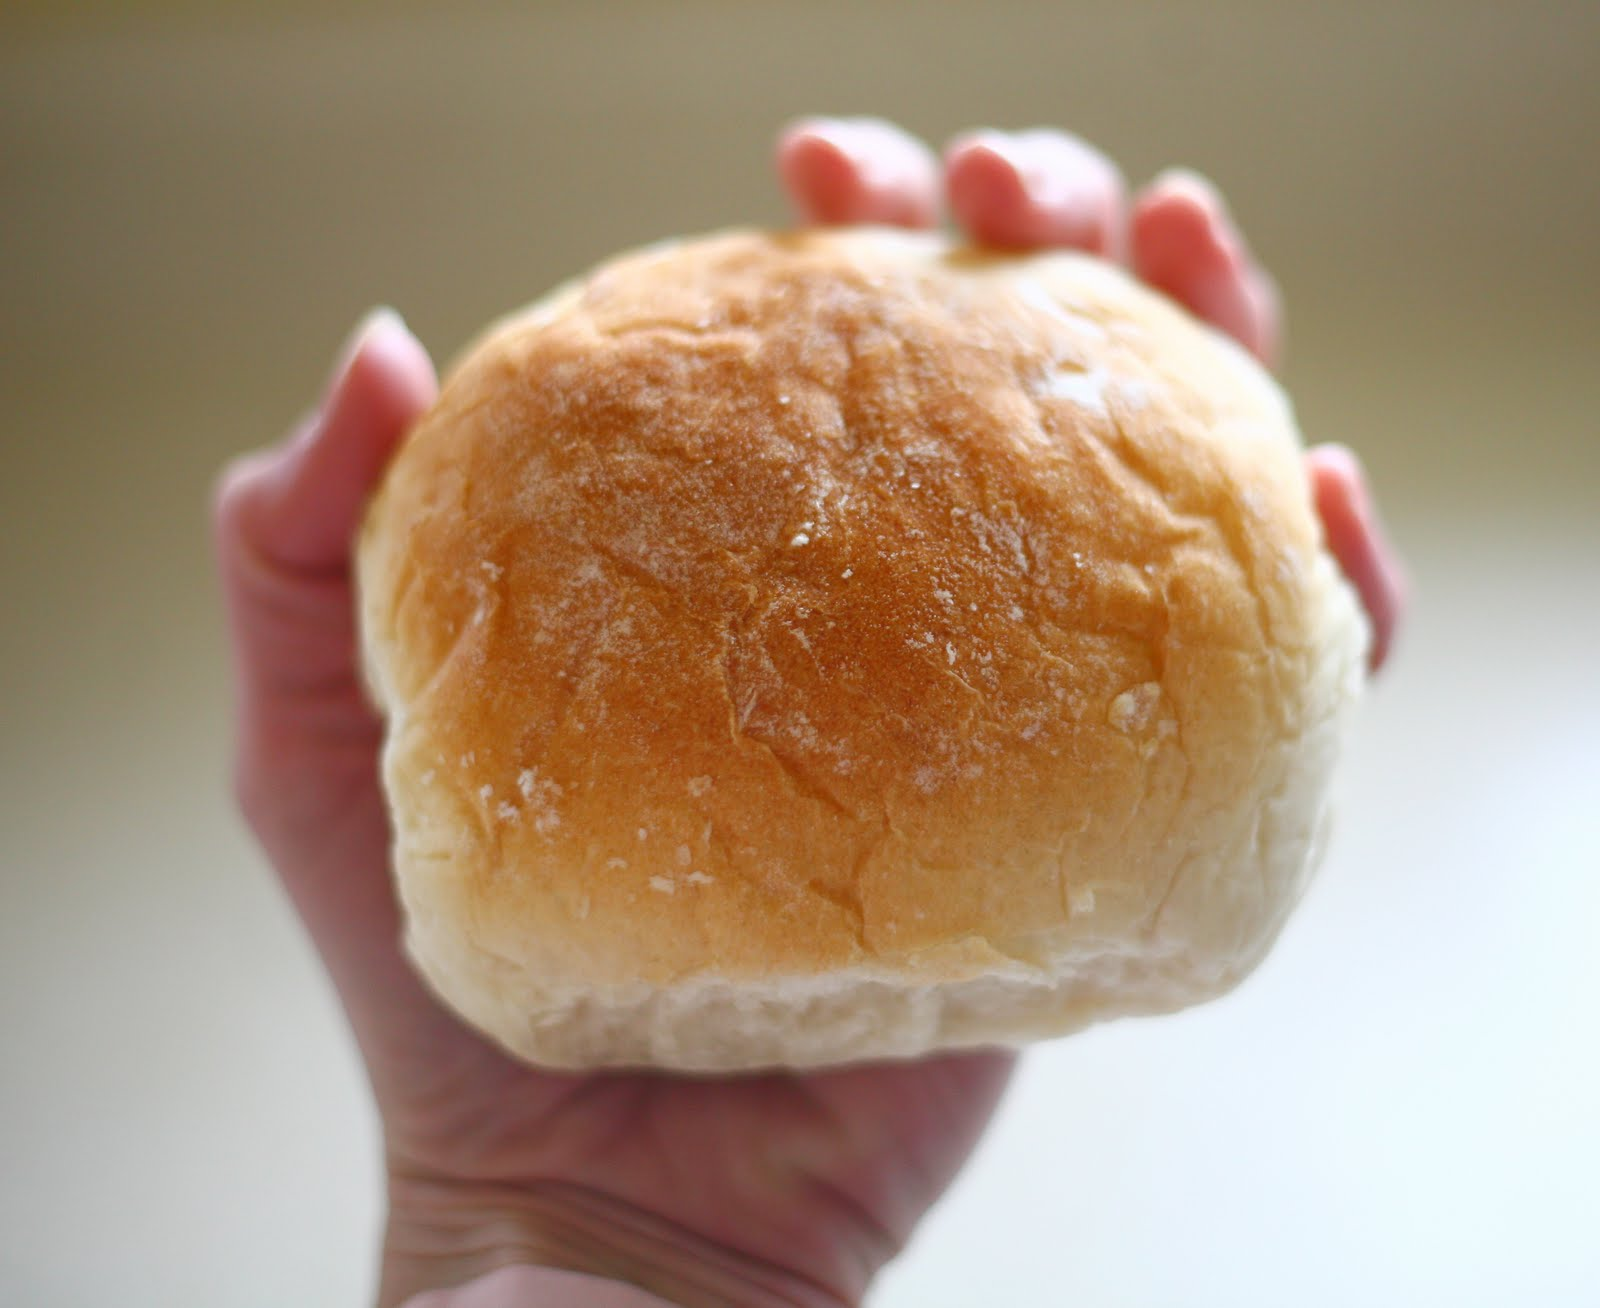 This post is about big, beautiful hamburger buns.